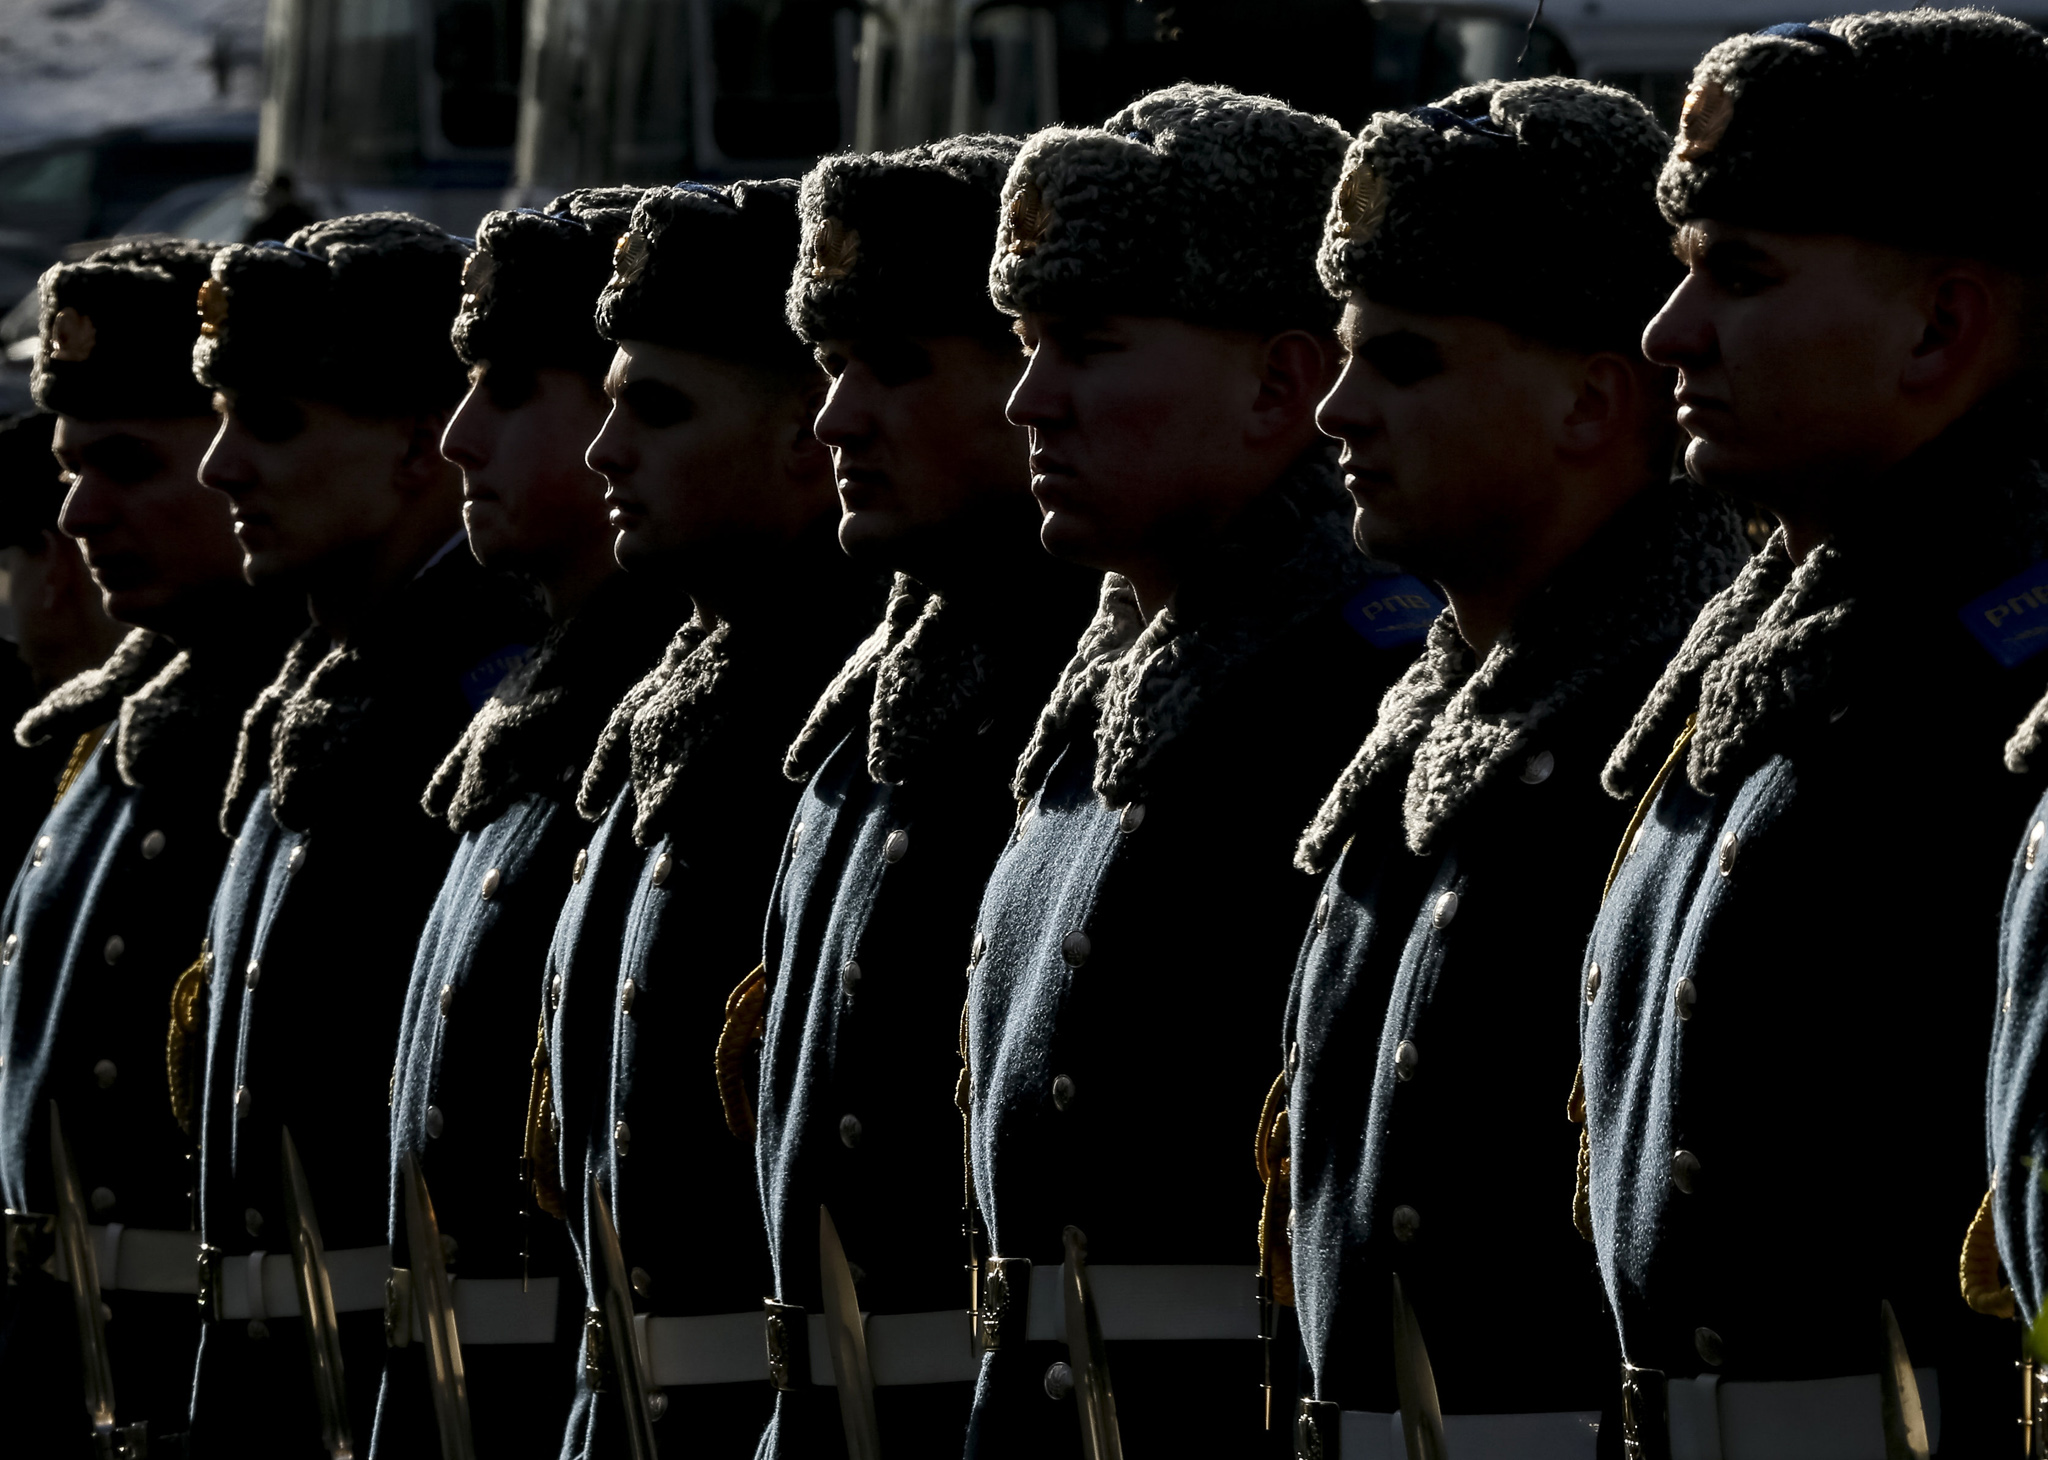 Honor guards attend a ceremony in Kiev...Honor guards attend a ceremony to commemorate several hundred students who died during a battle on January 29, 1918 while defending the Ukrainian capital from the Bolsheviks, in Kiev, Ukraine January 29, 2016. REUTERS/Gleb Garanich